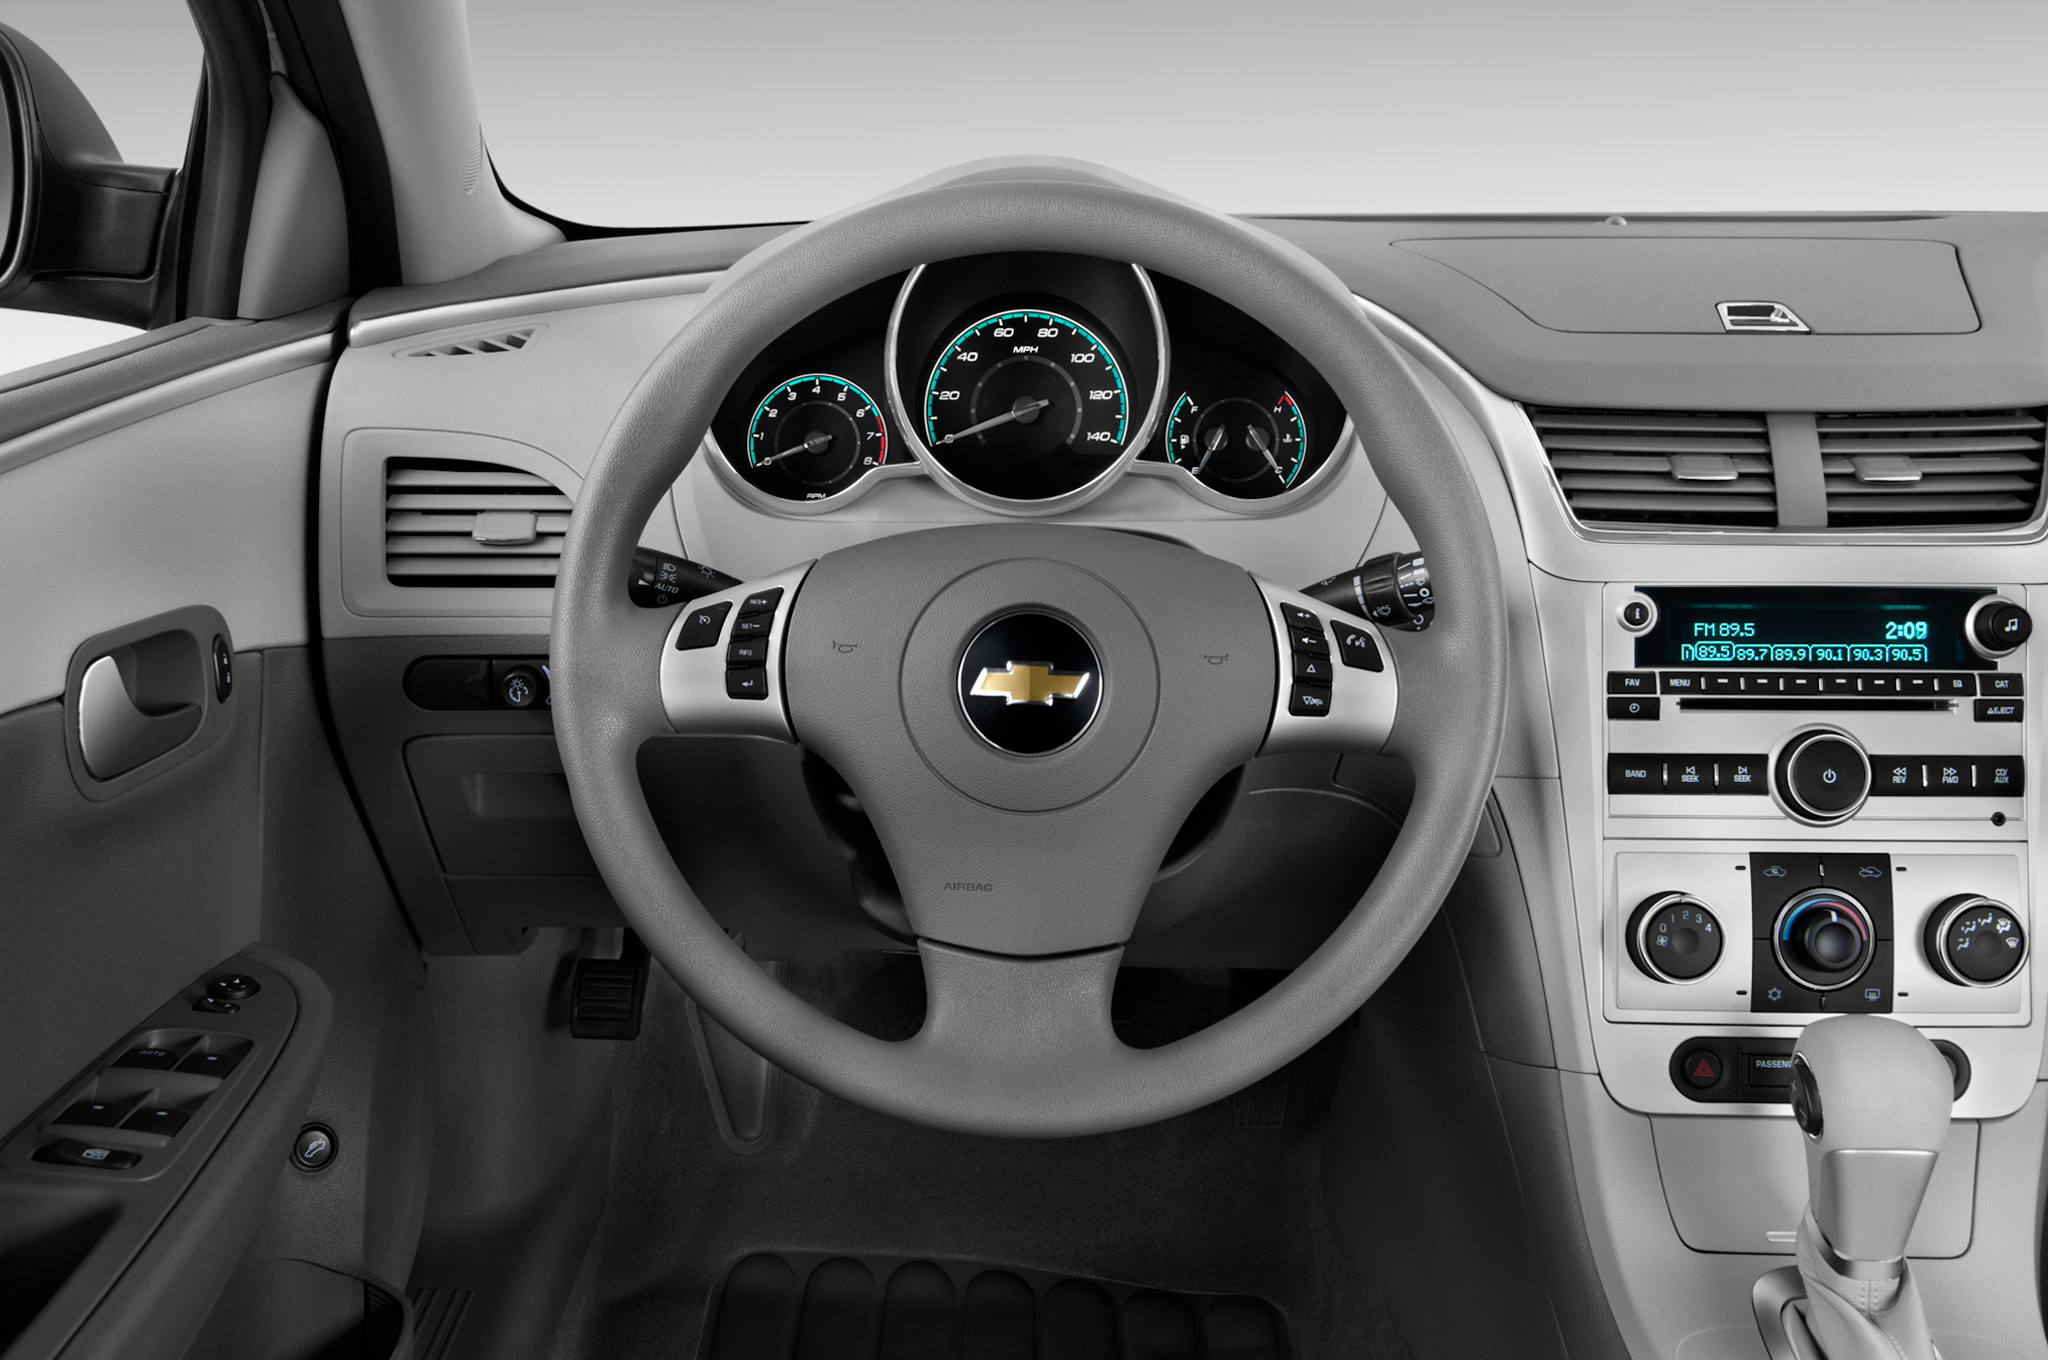 Quick Look The 2013 Chevrolet Malibu S Interior Mylink Voice